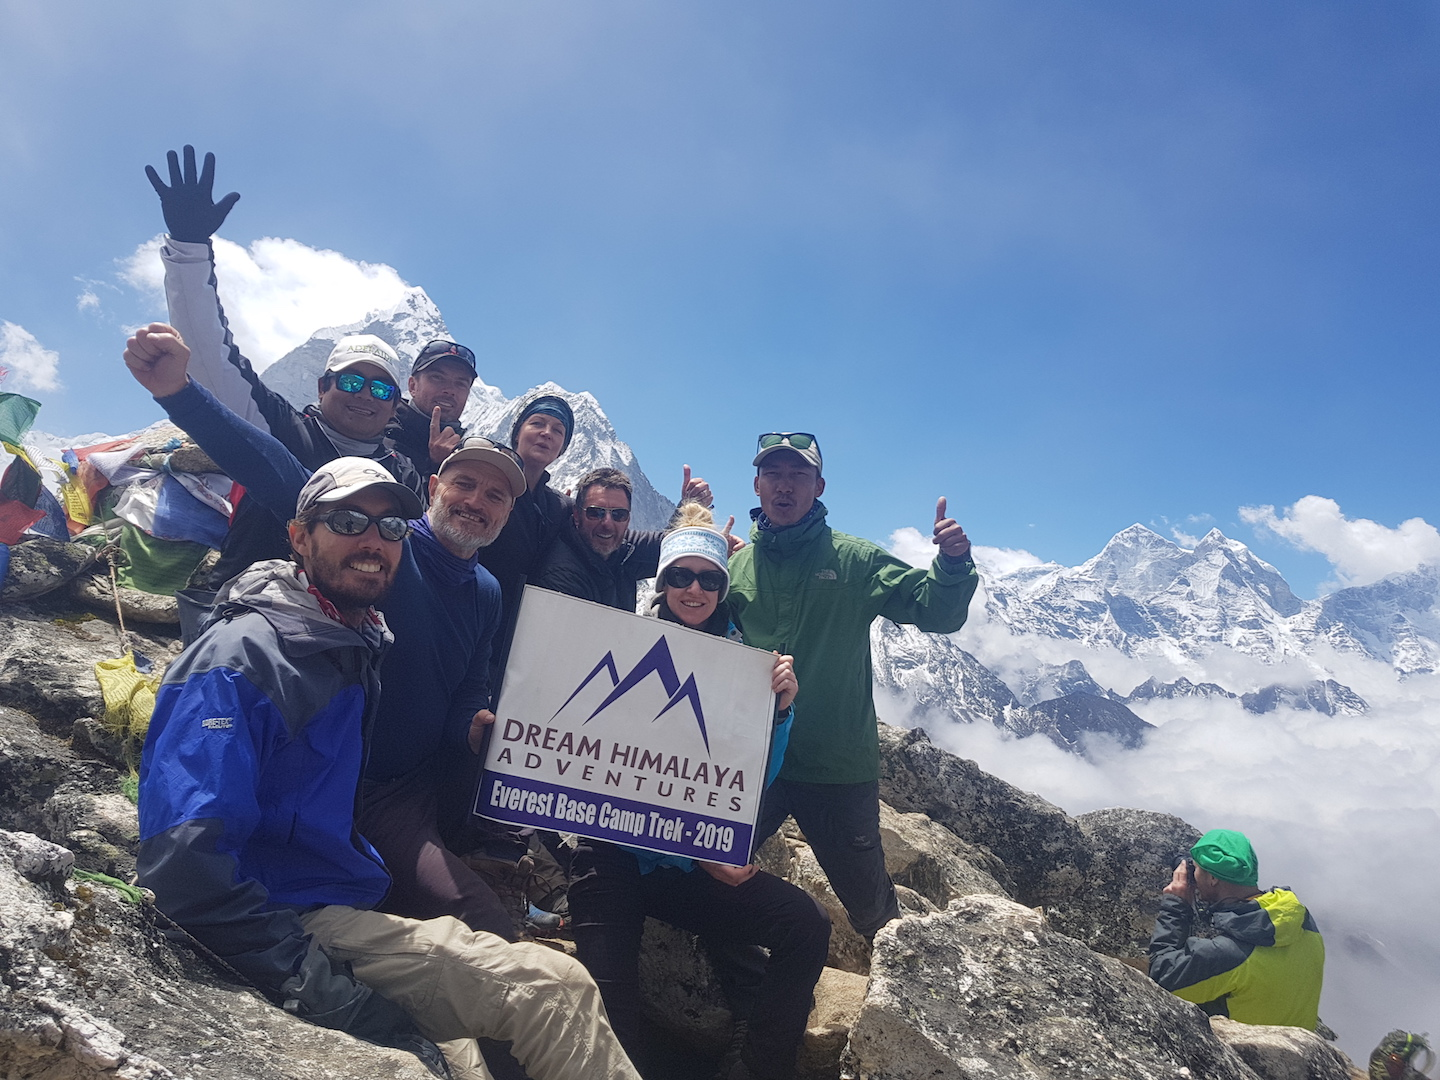 Successful Everest Base Camp Trek: year 2019 - Dream Himalayan Adventure Pvt. Ltd.